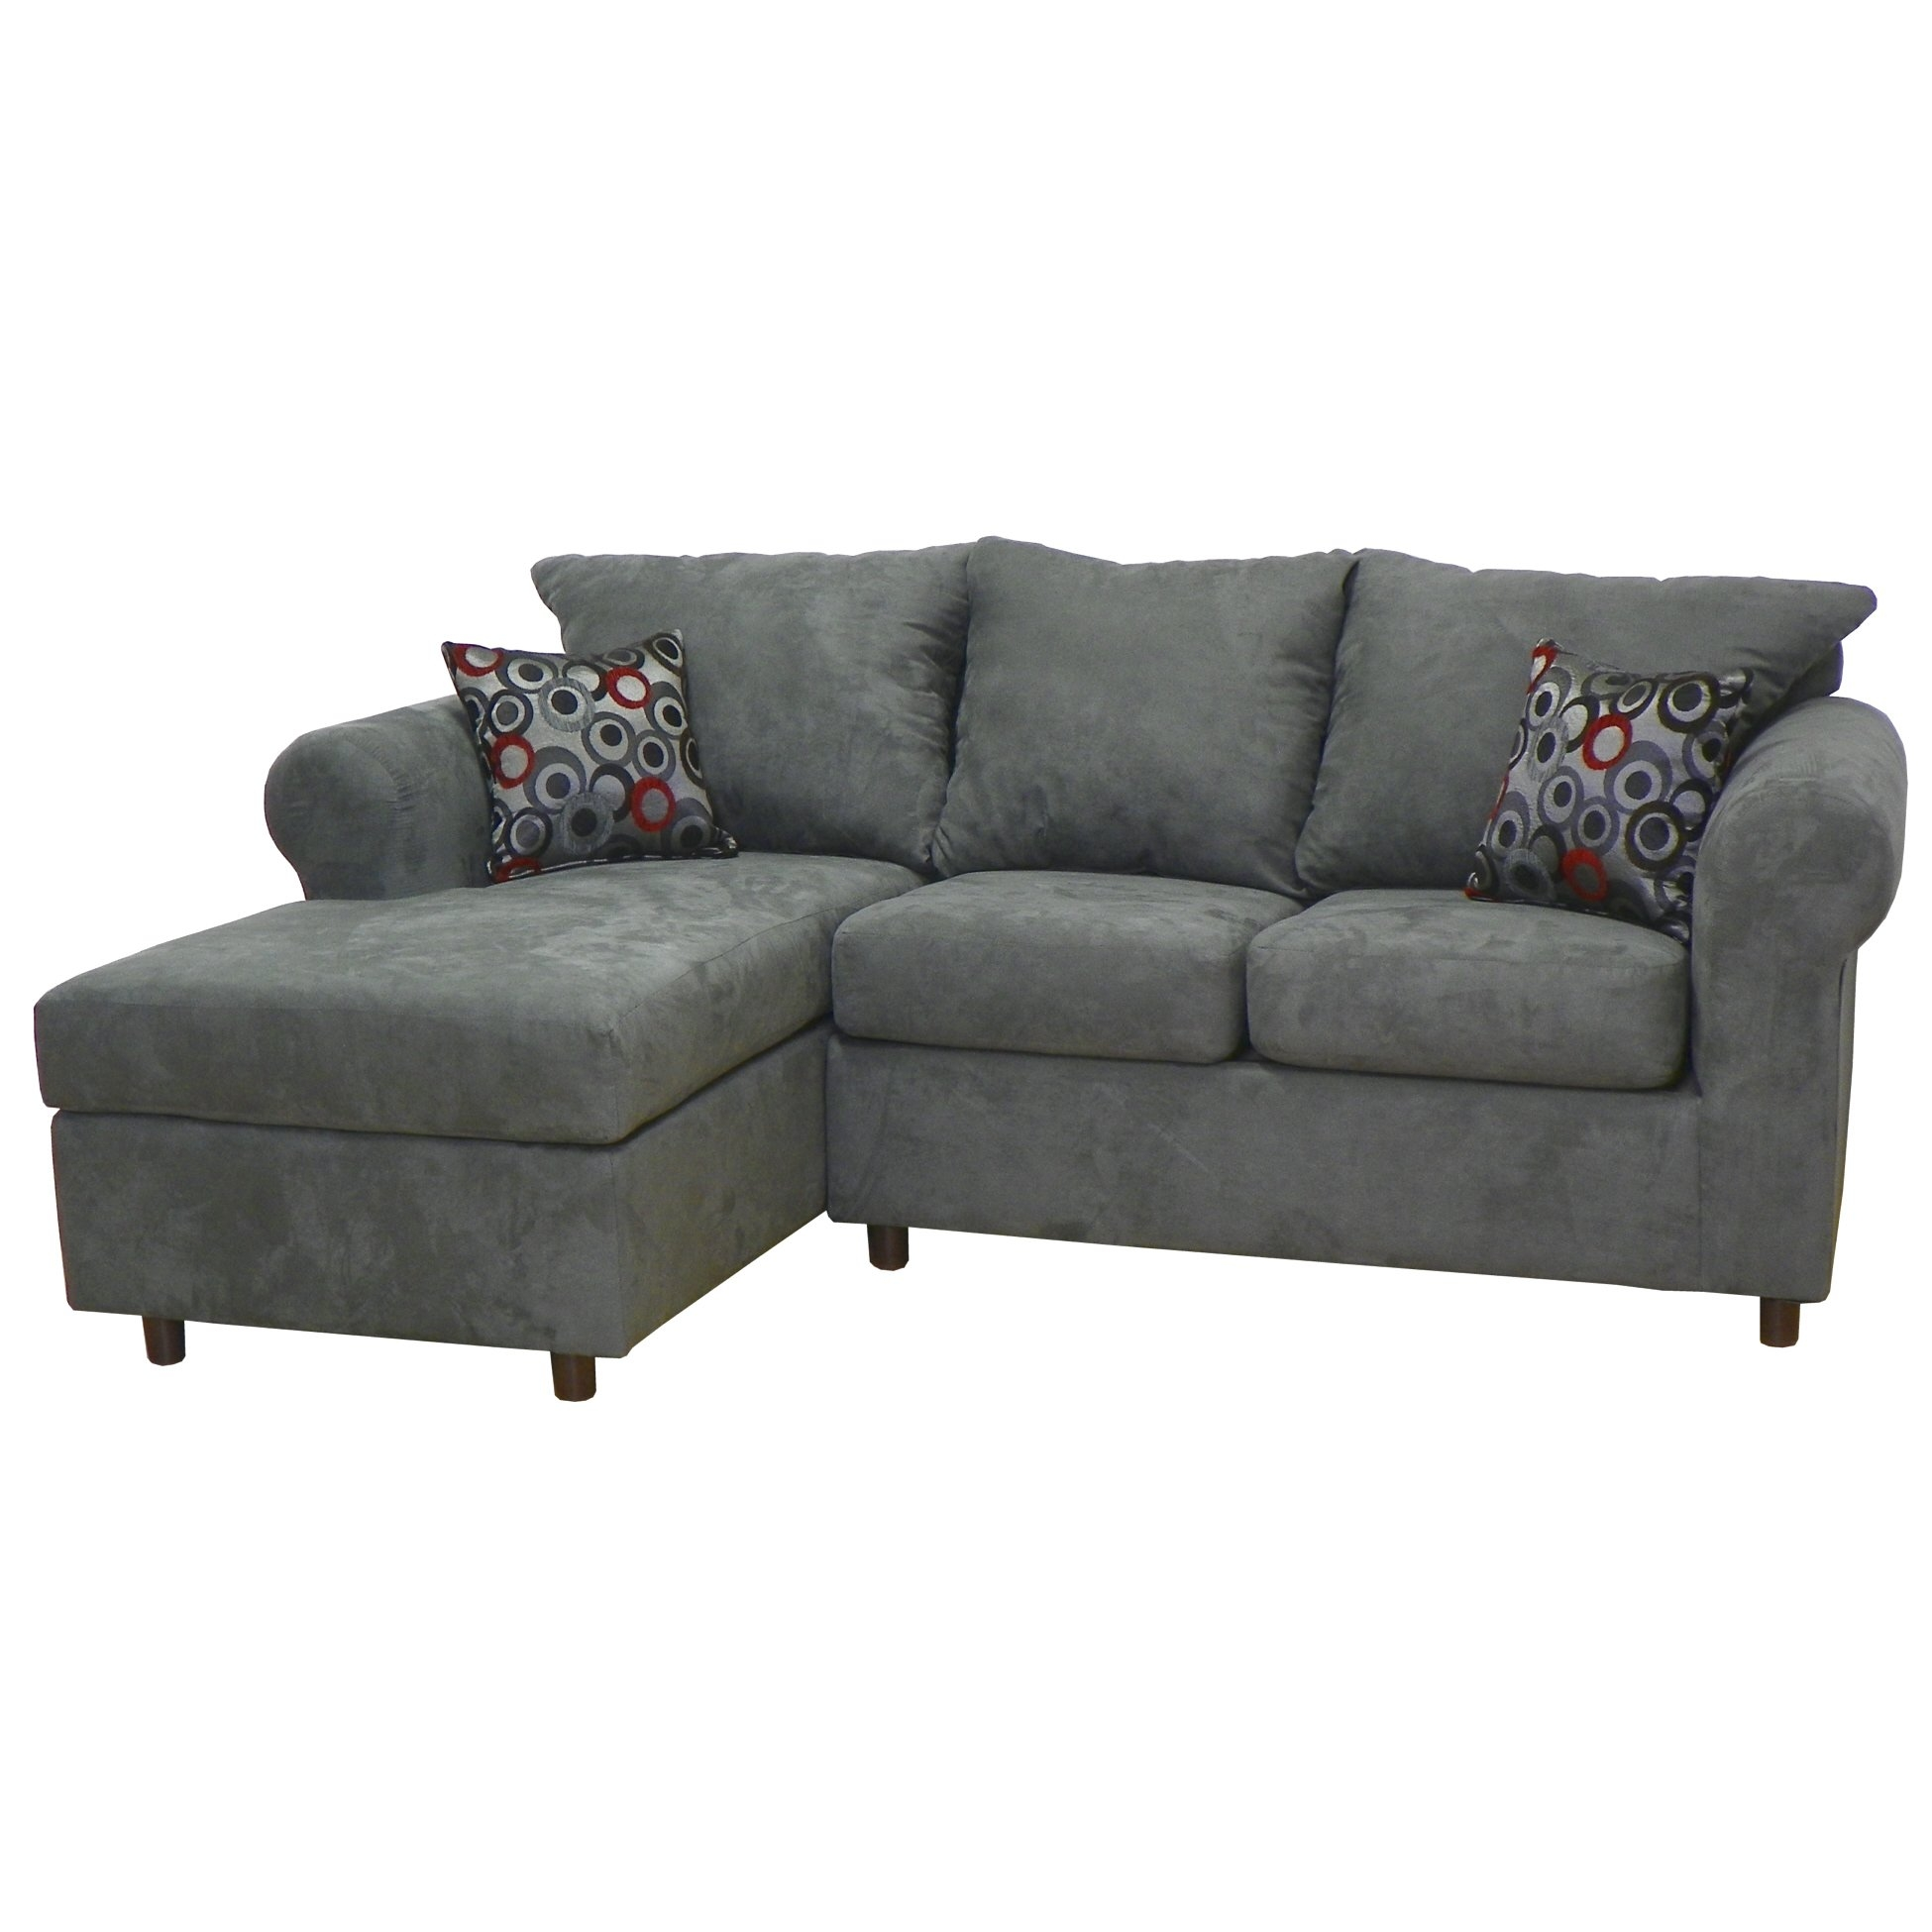 Sectional Sofas Youll Love Wayfair Throughout Big Sofas Sectionals (Image 6 of 15)